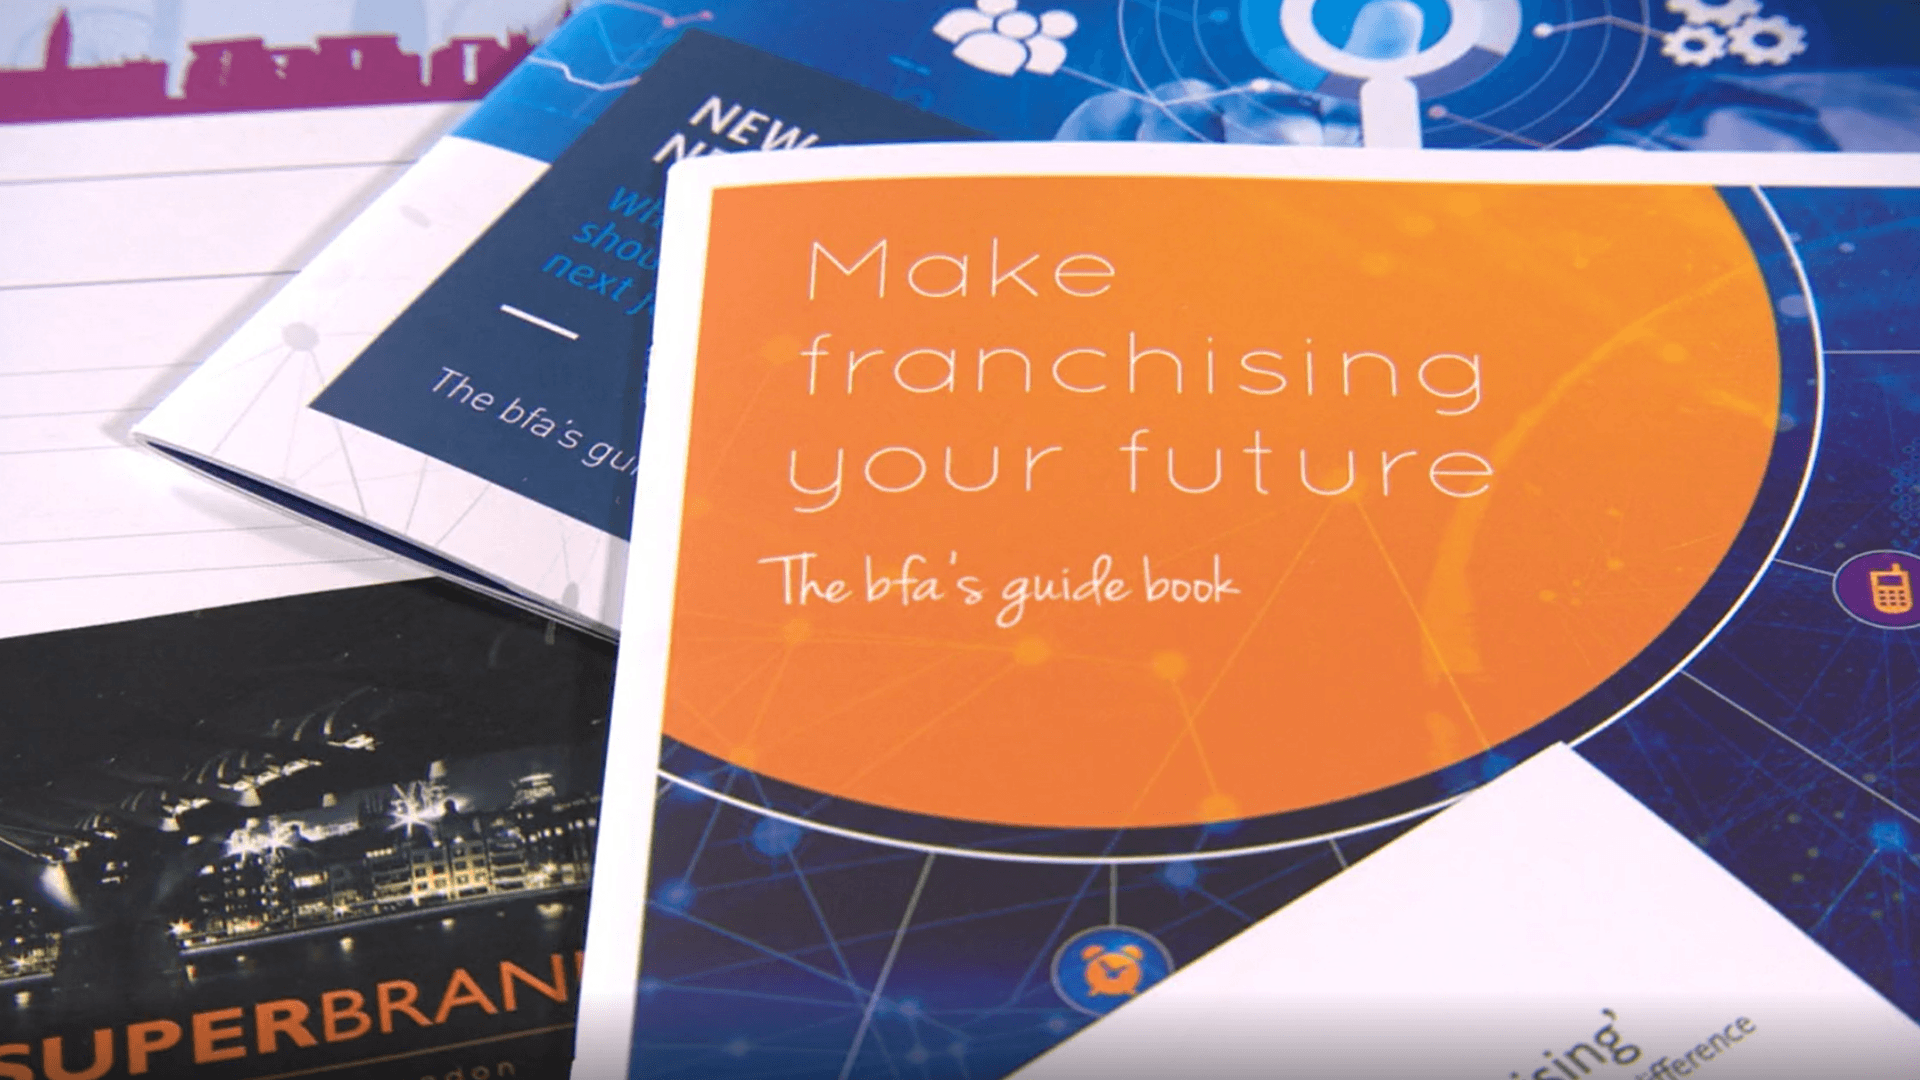 bfa Franchise Training Academy – how to stand out from the crowd